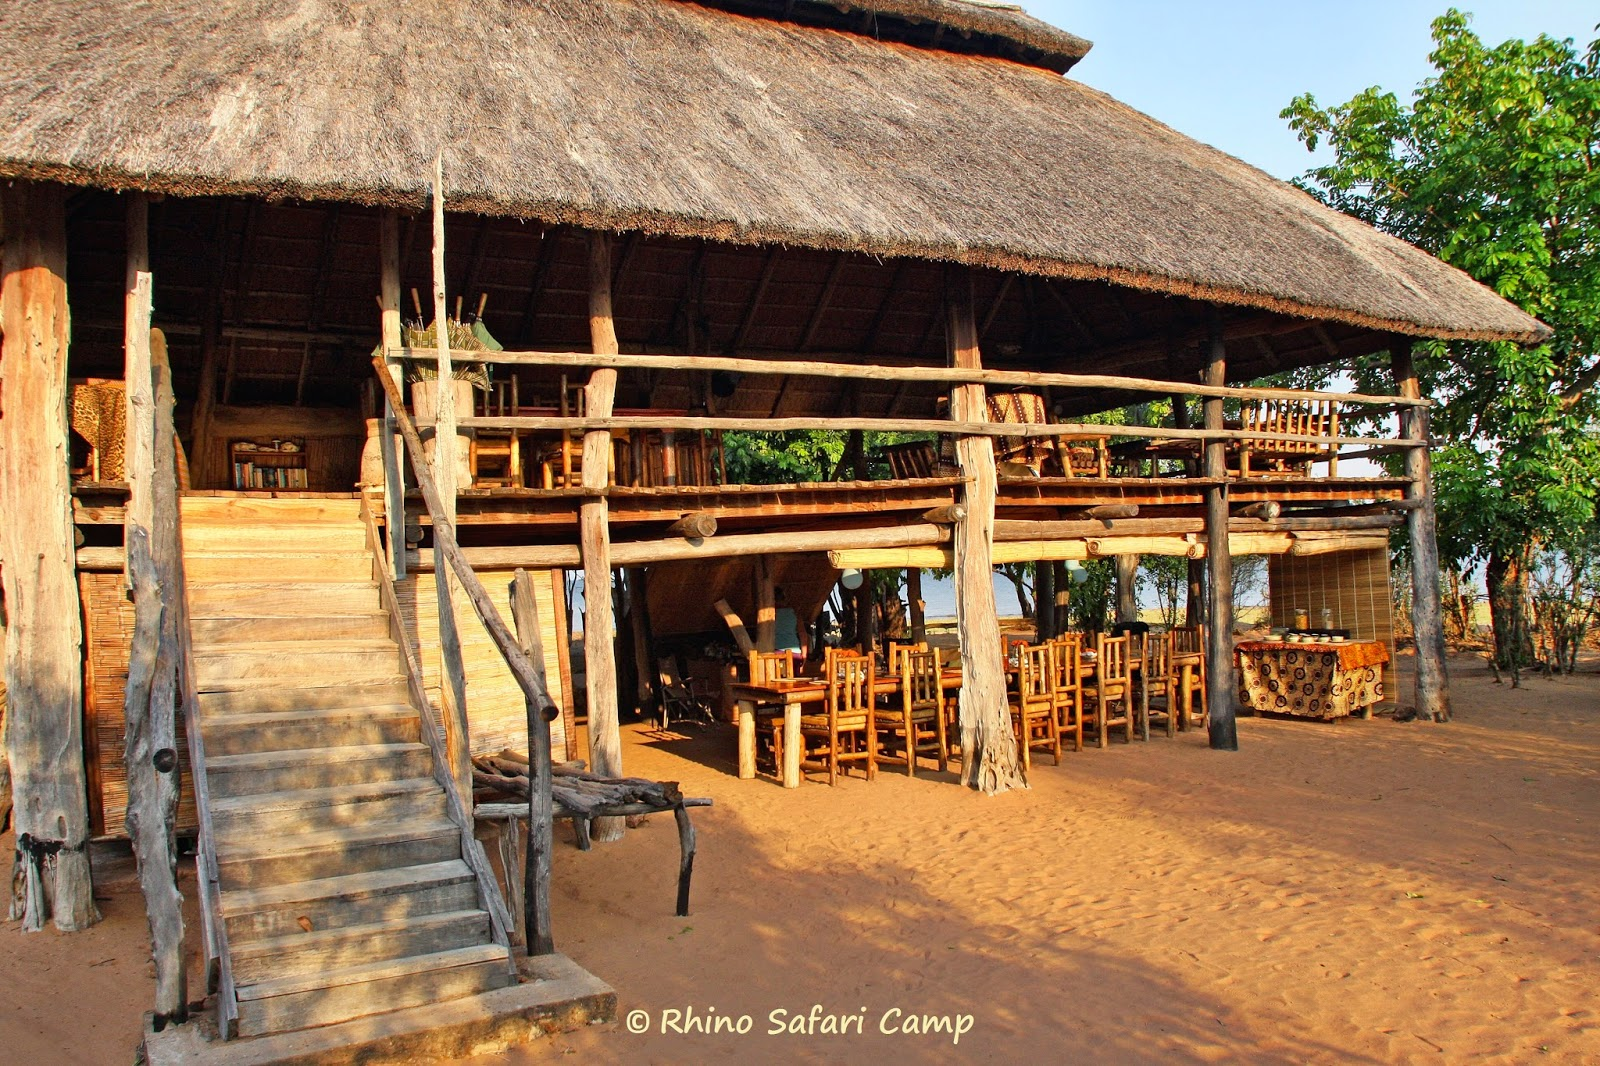 The main lounge and dining area - Rhino Safari Camp